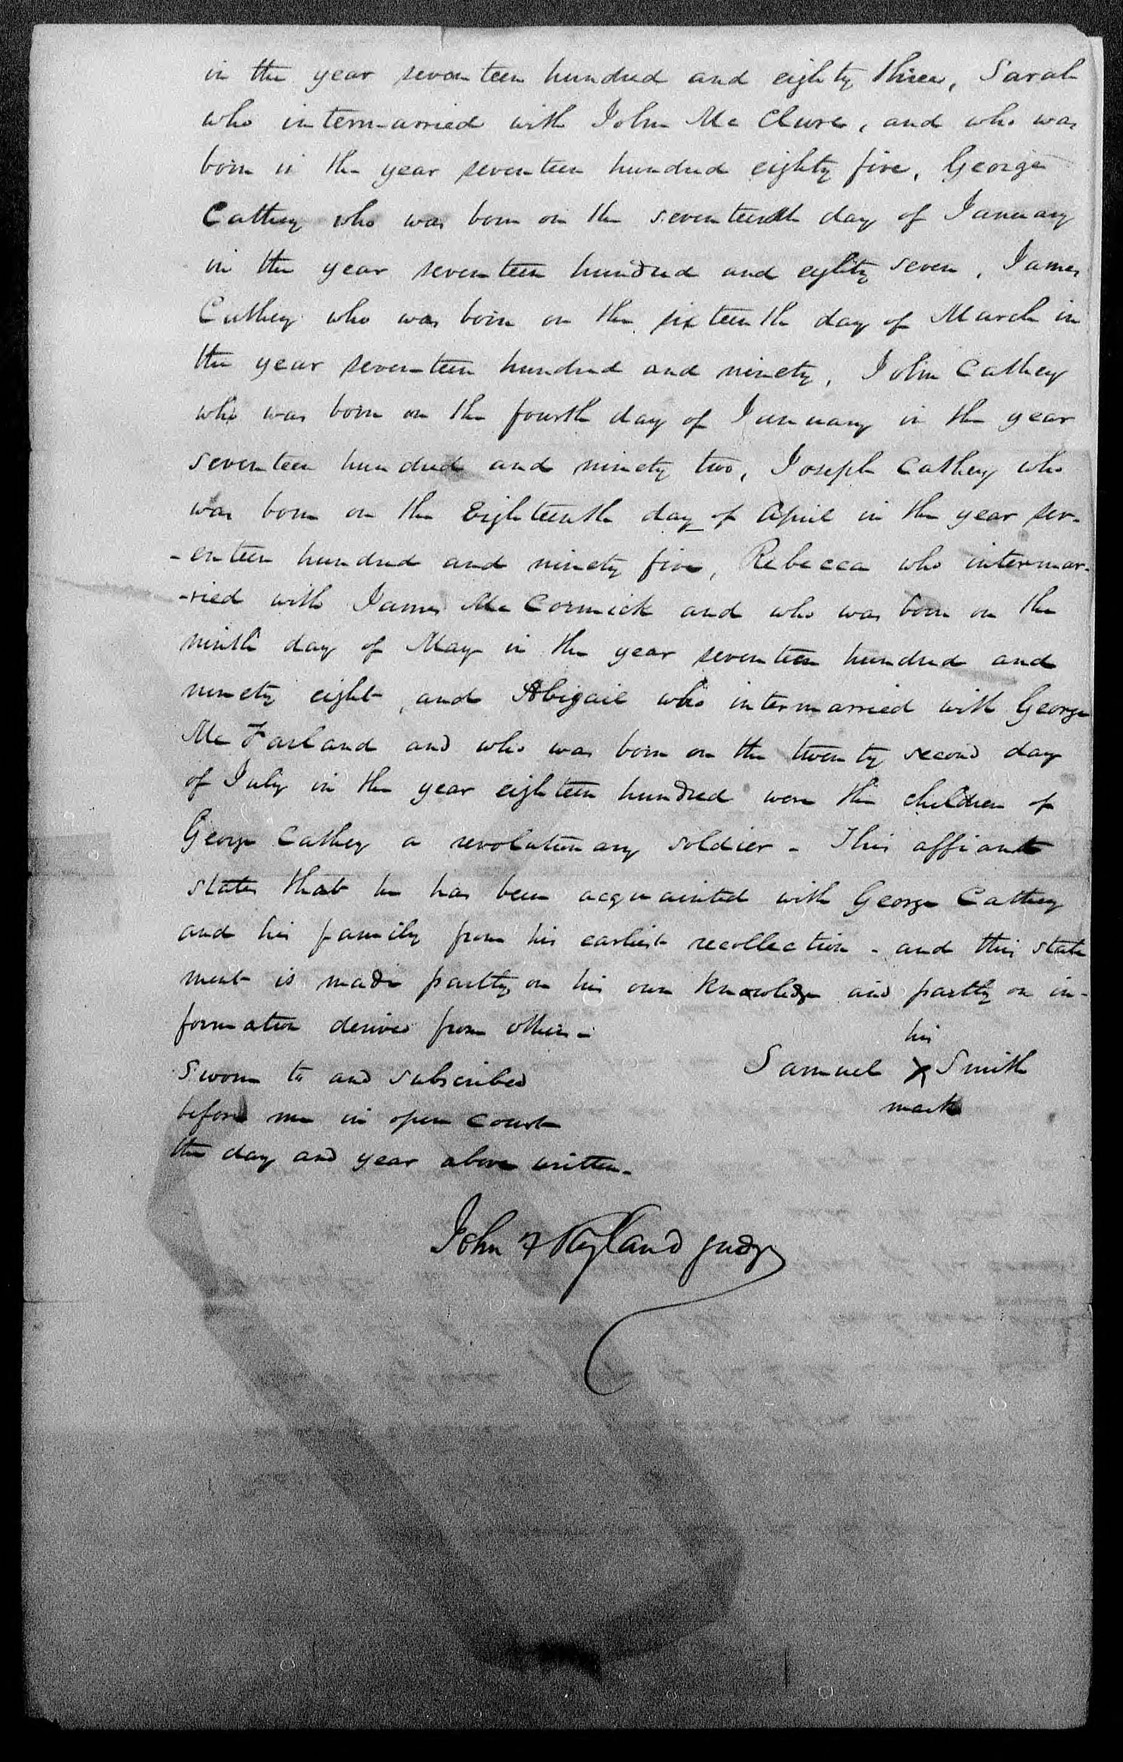 Captain George Cathey's Pension File